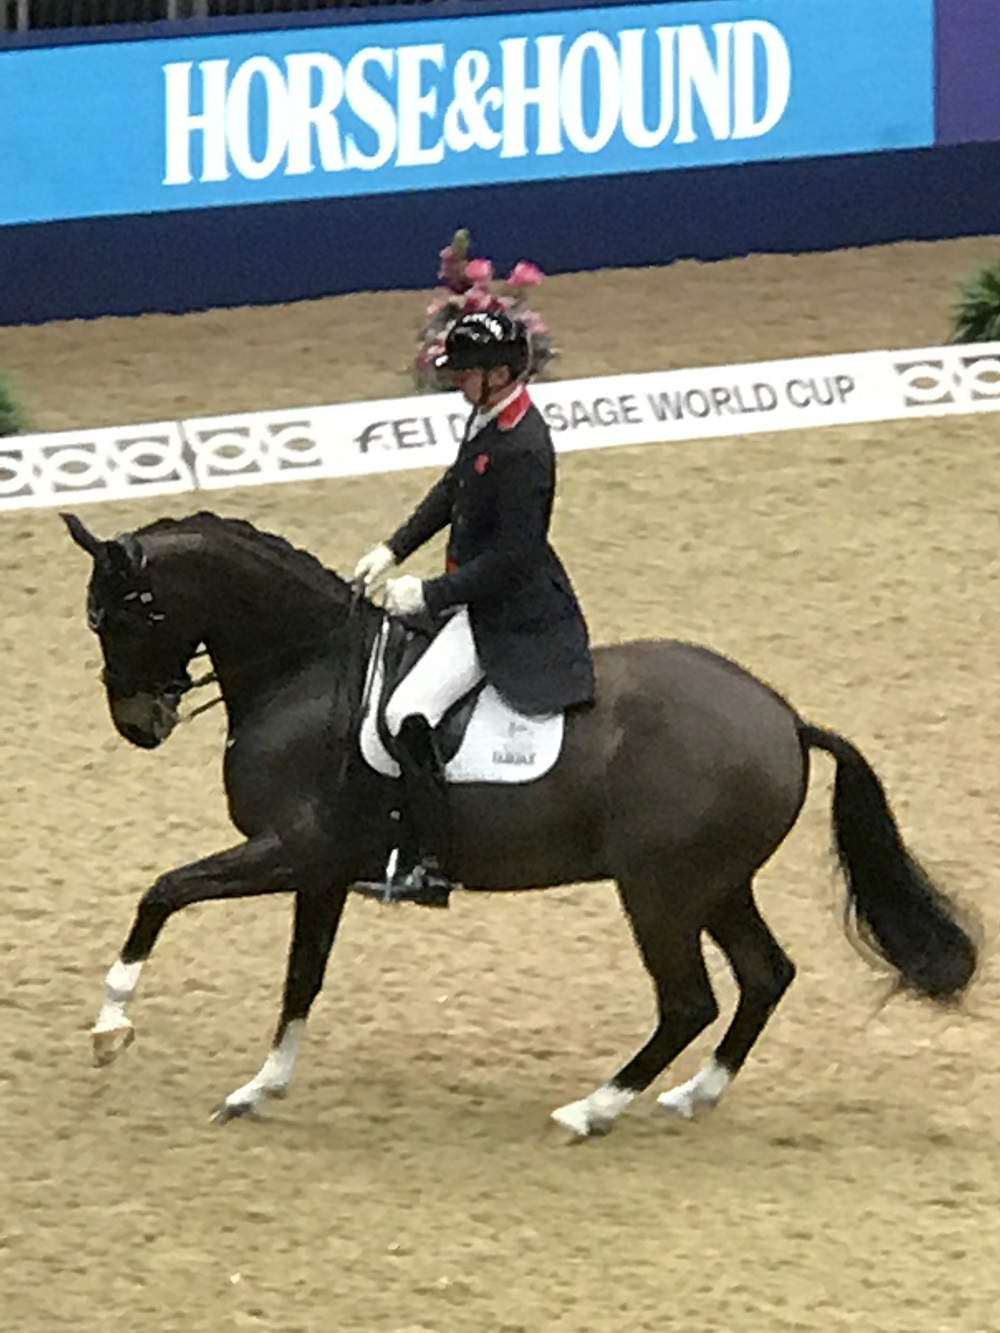 Olympia Dressage Pirouette - fei world cup™